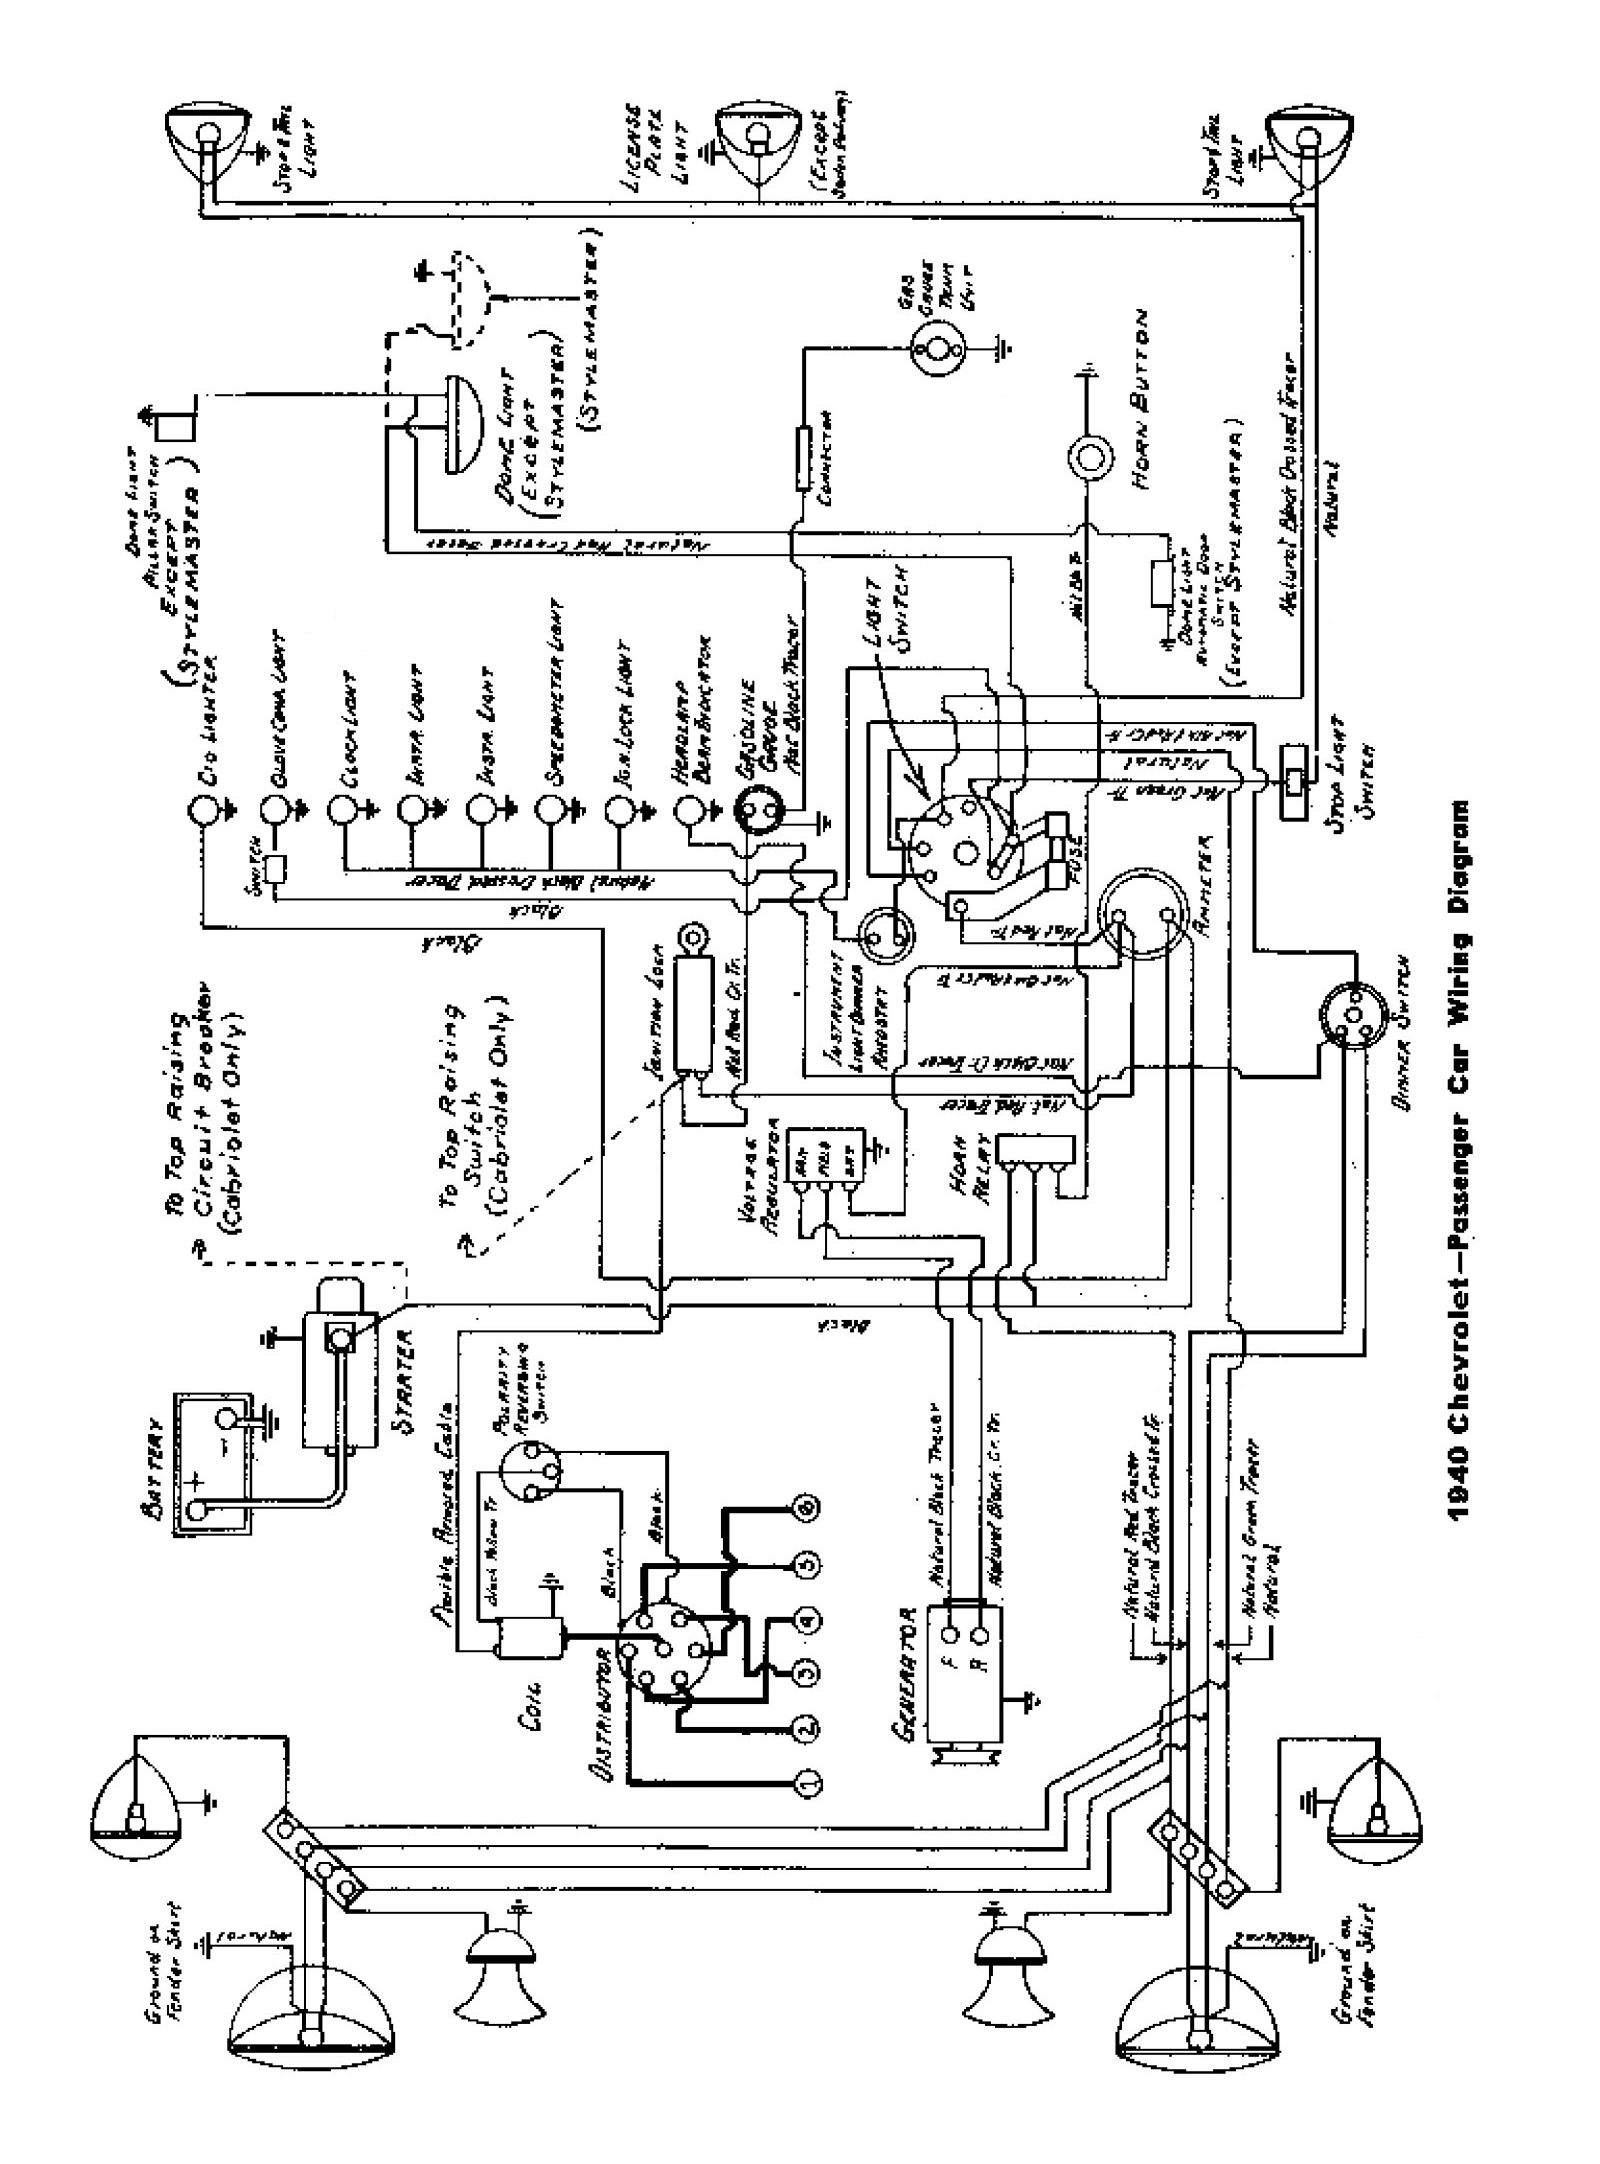 Ford Wiring Diagram 1964 Galaxie Ignition 40 Harness Librarya For 1940 Simple